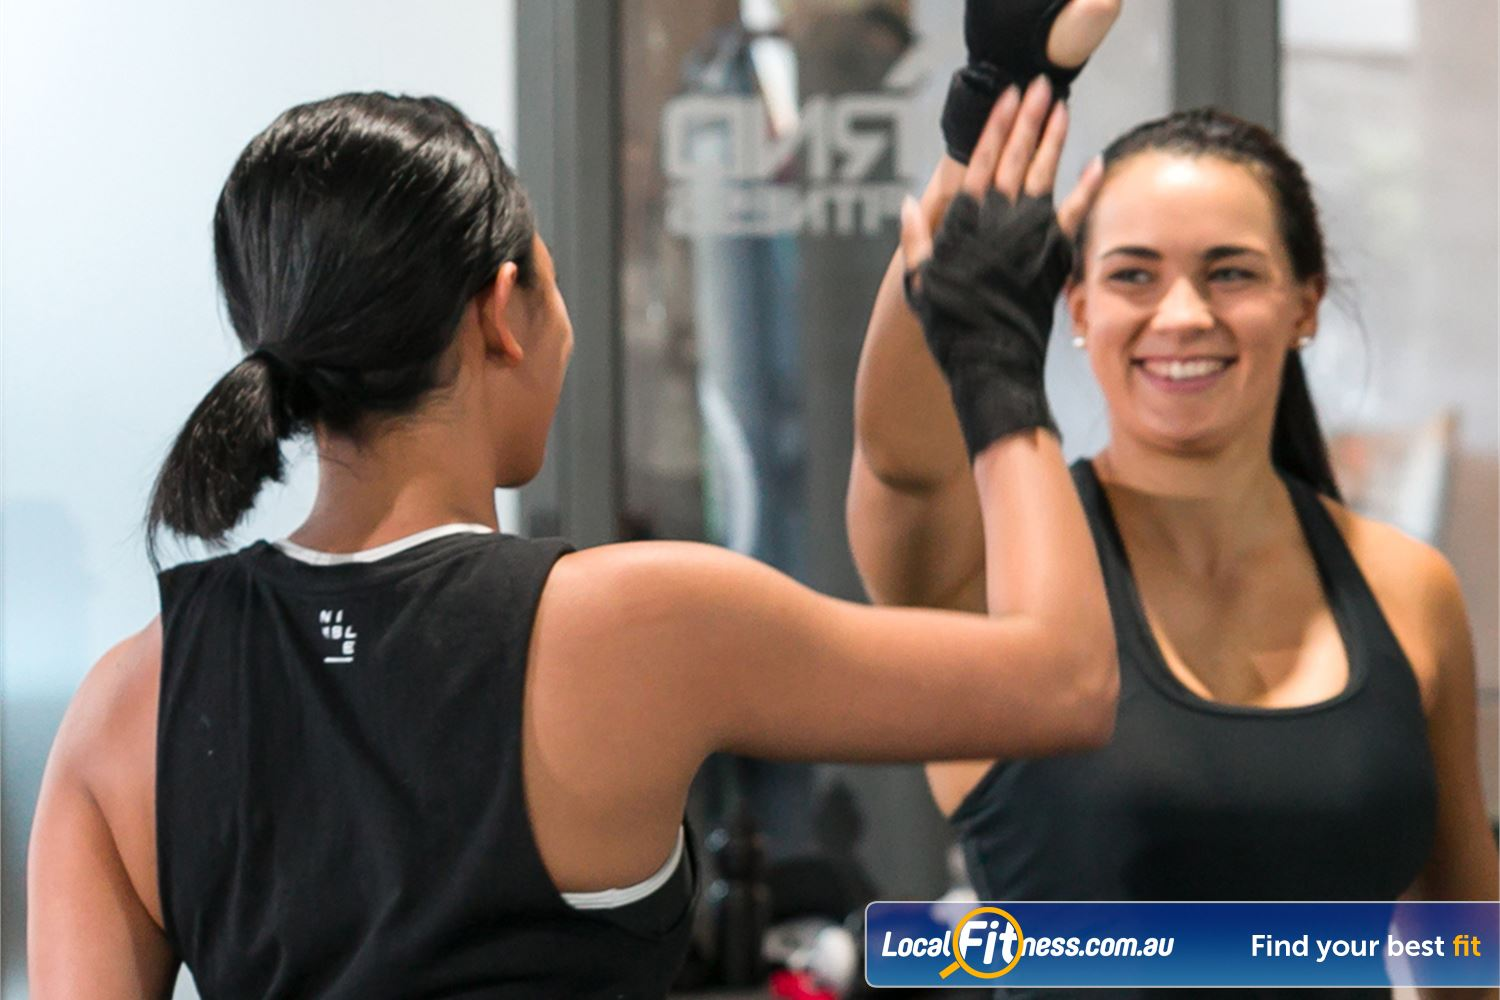 12 Round Fitness Camberwell Camberwell HIIT Boxing training will give you the best results.